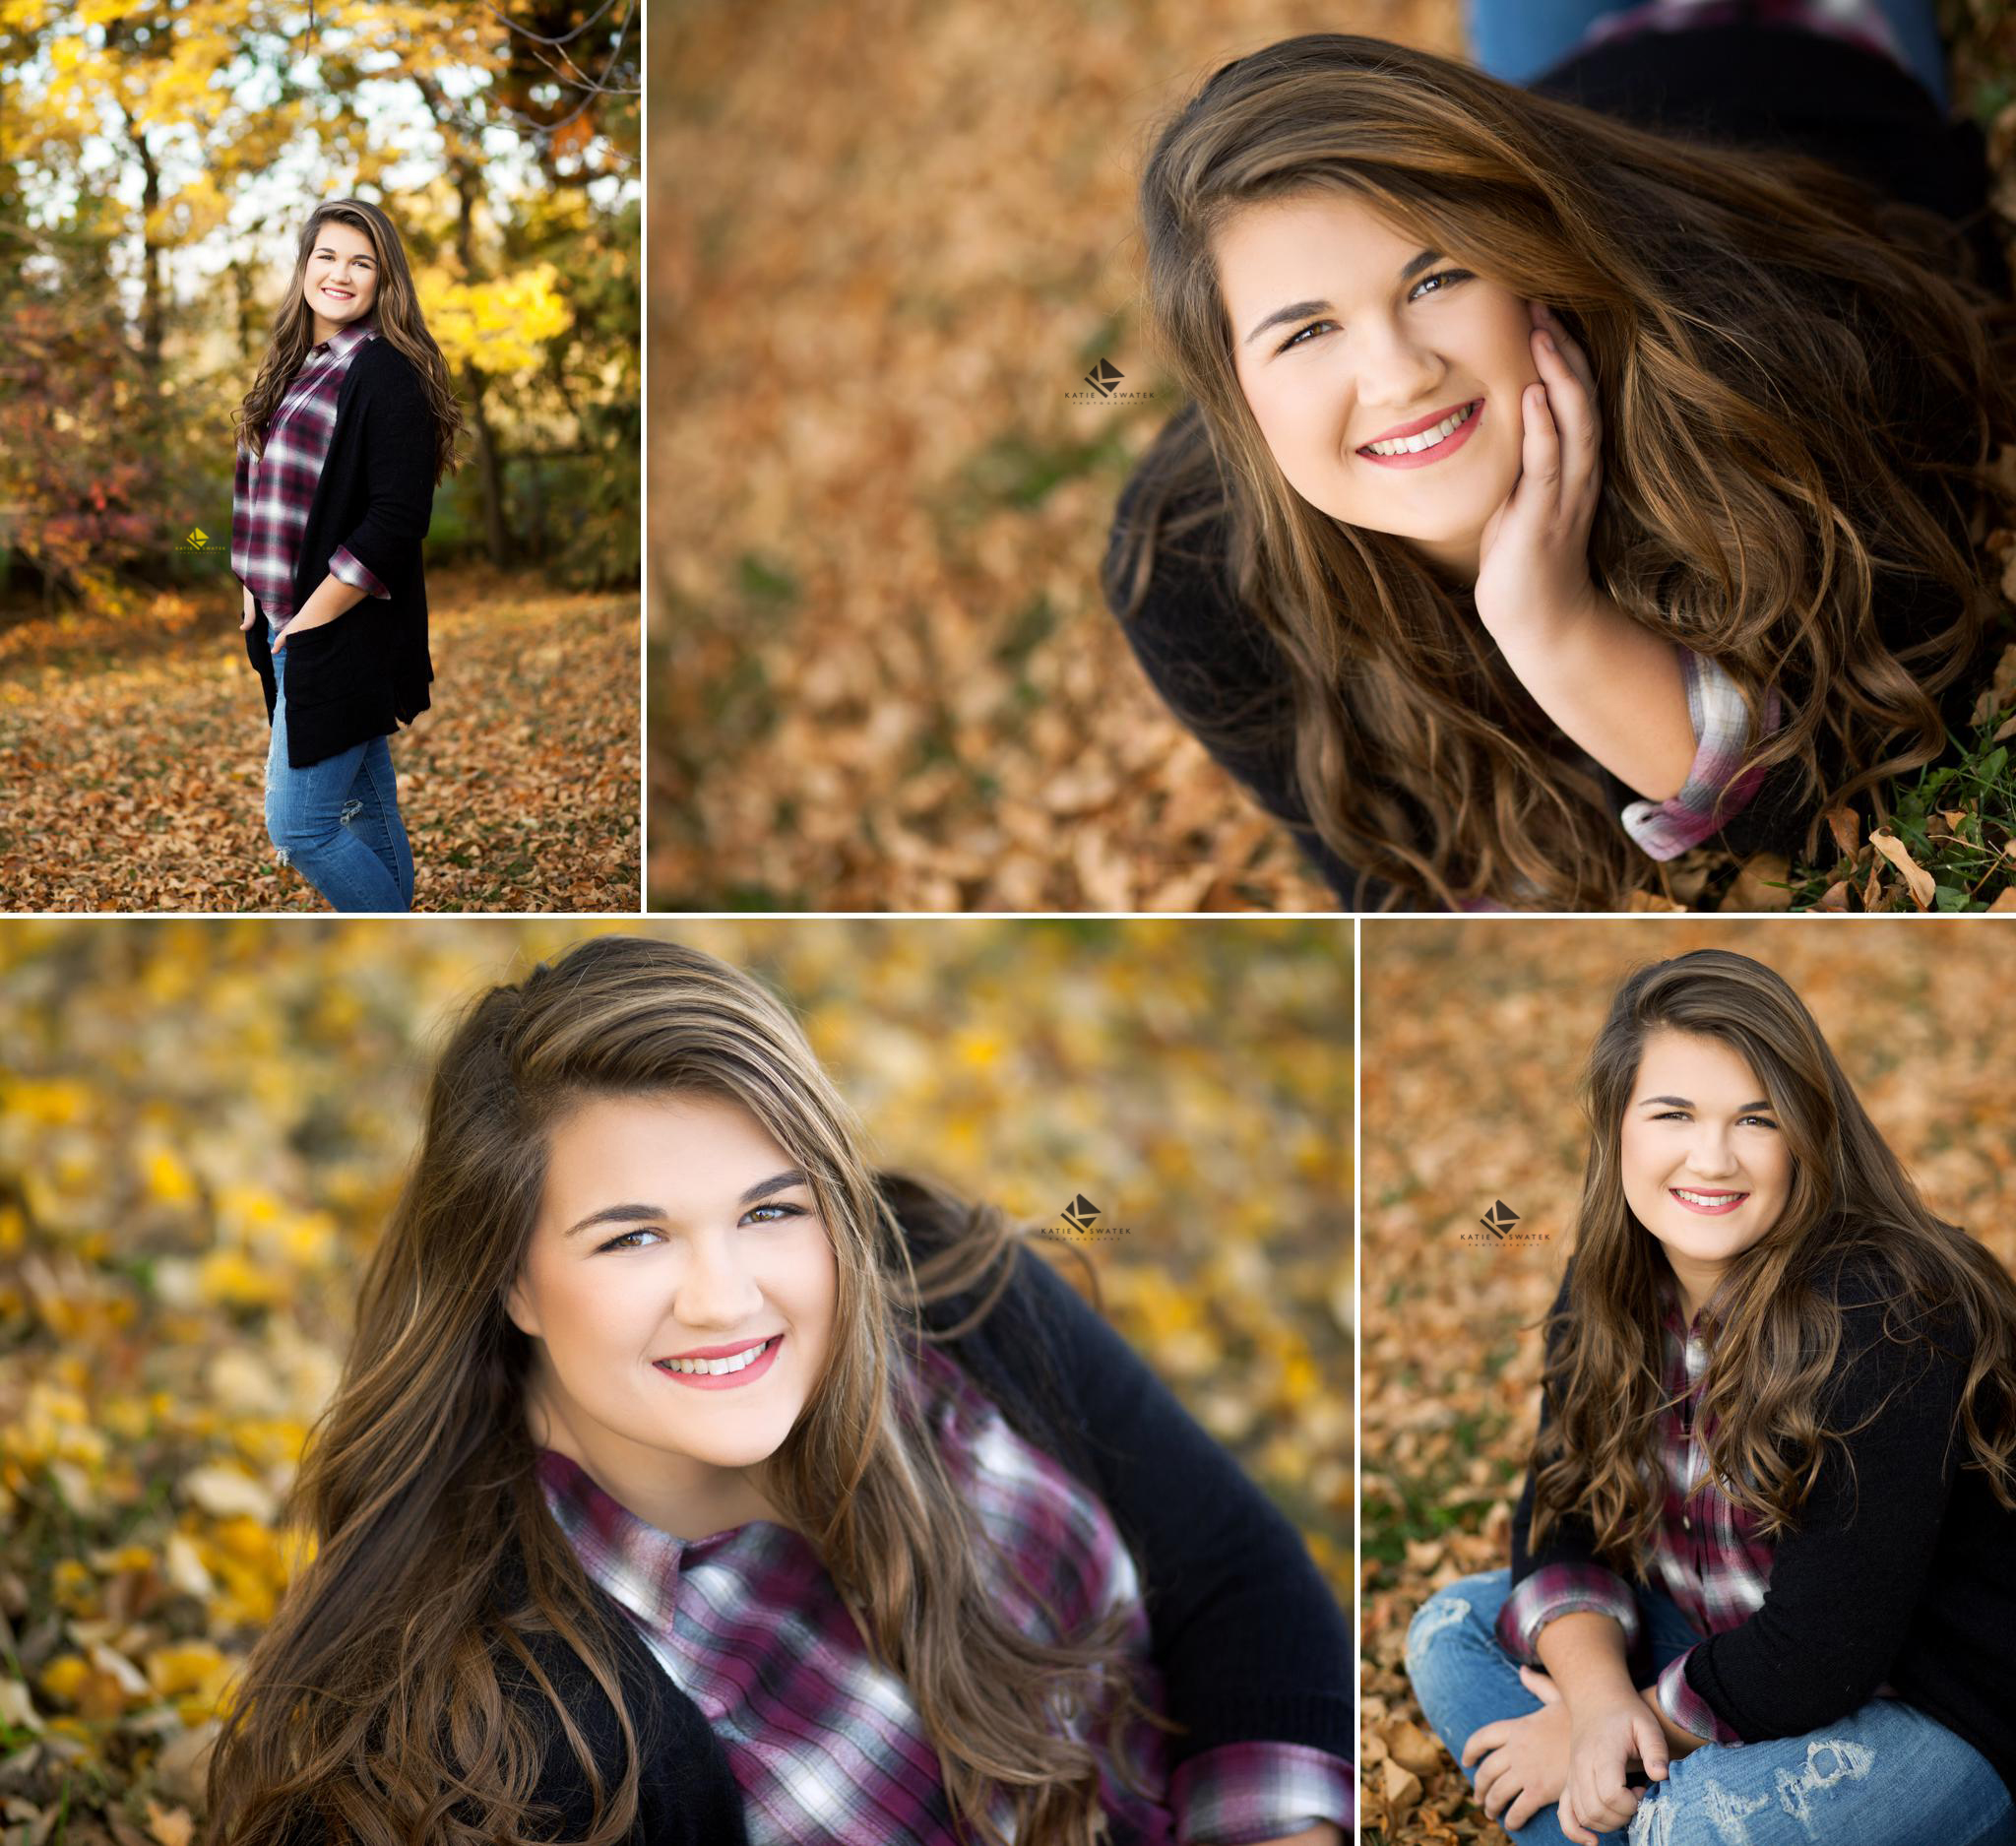 brunette senior girl in a maroon plaid top with a black cardigan posing for senior pictures in yellow fall leaves